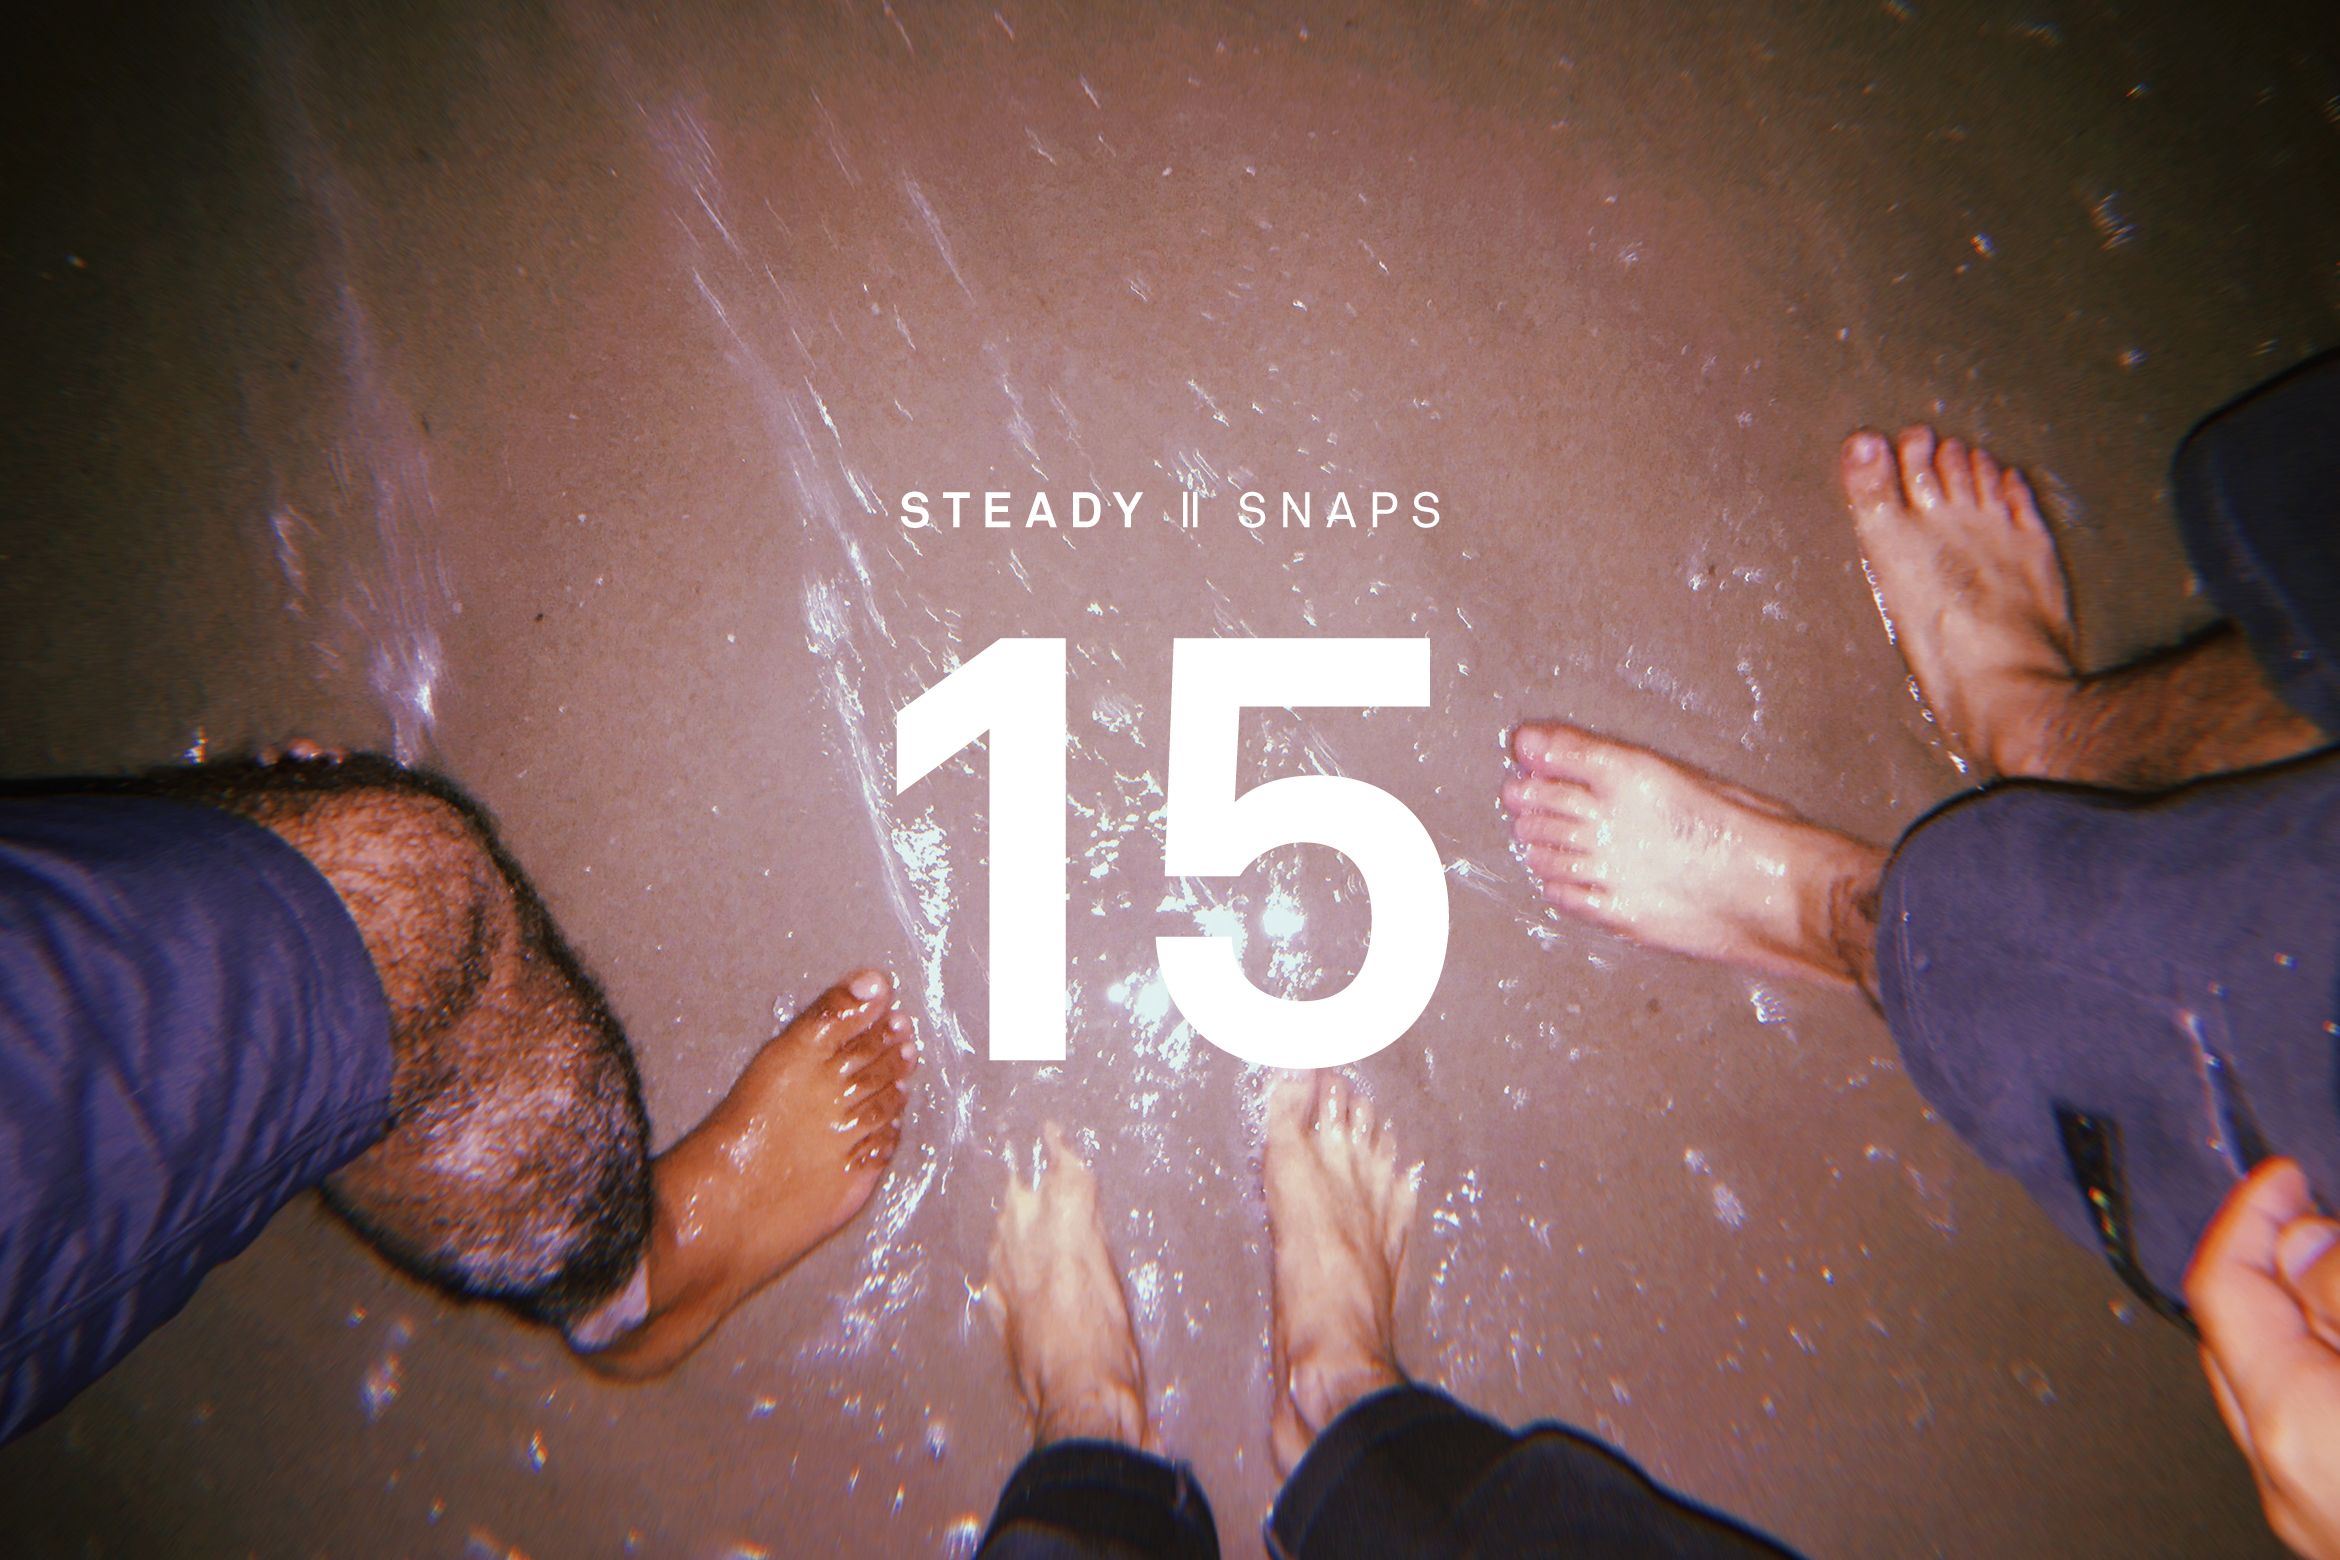 STEADY SNAPS: 15